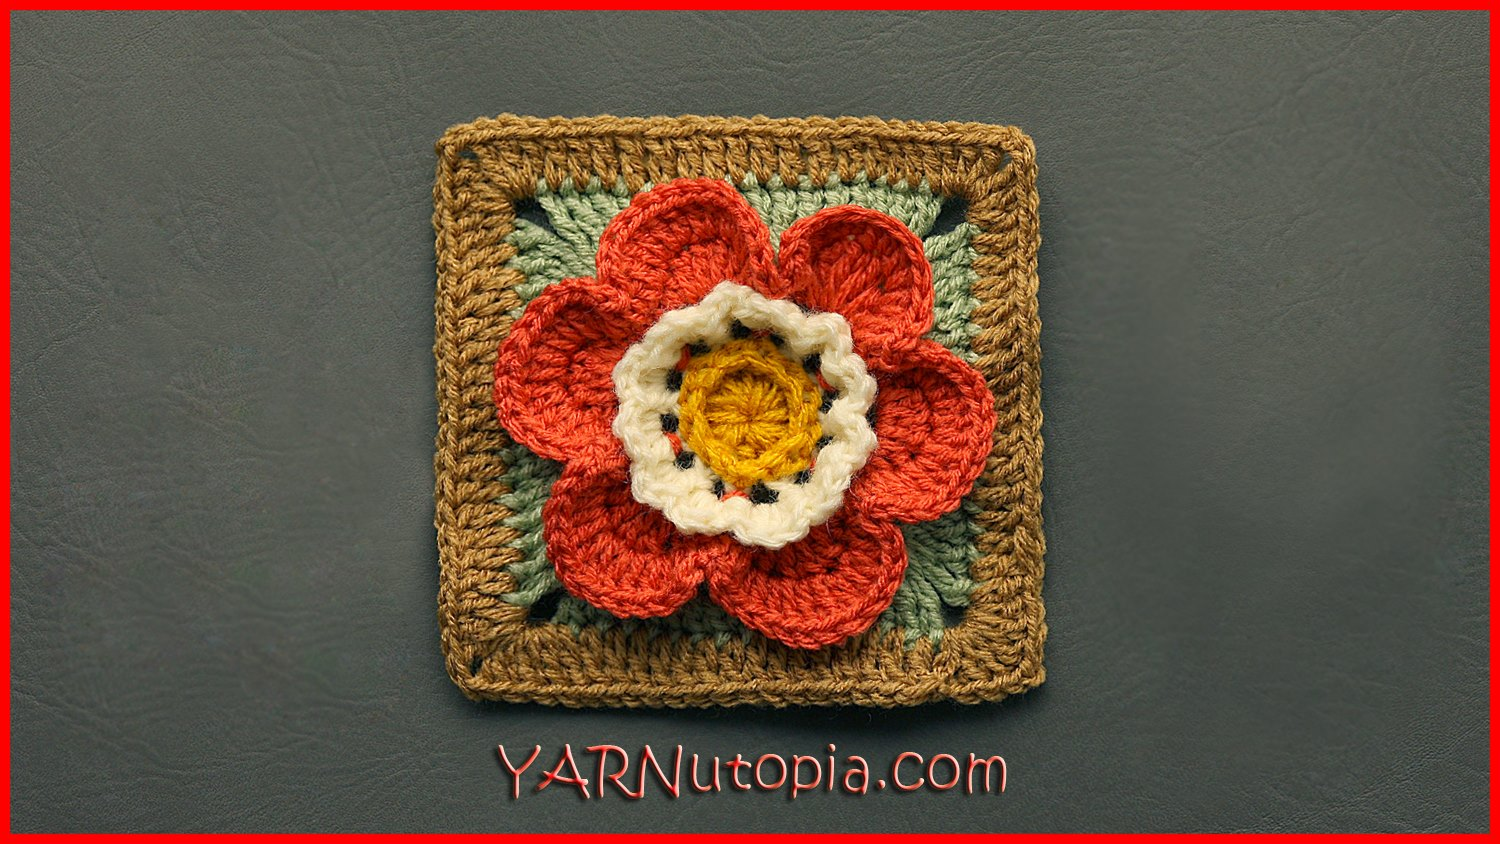 Crochet Tutorial: Autumn Flower Granny Square « YARNutopia ...